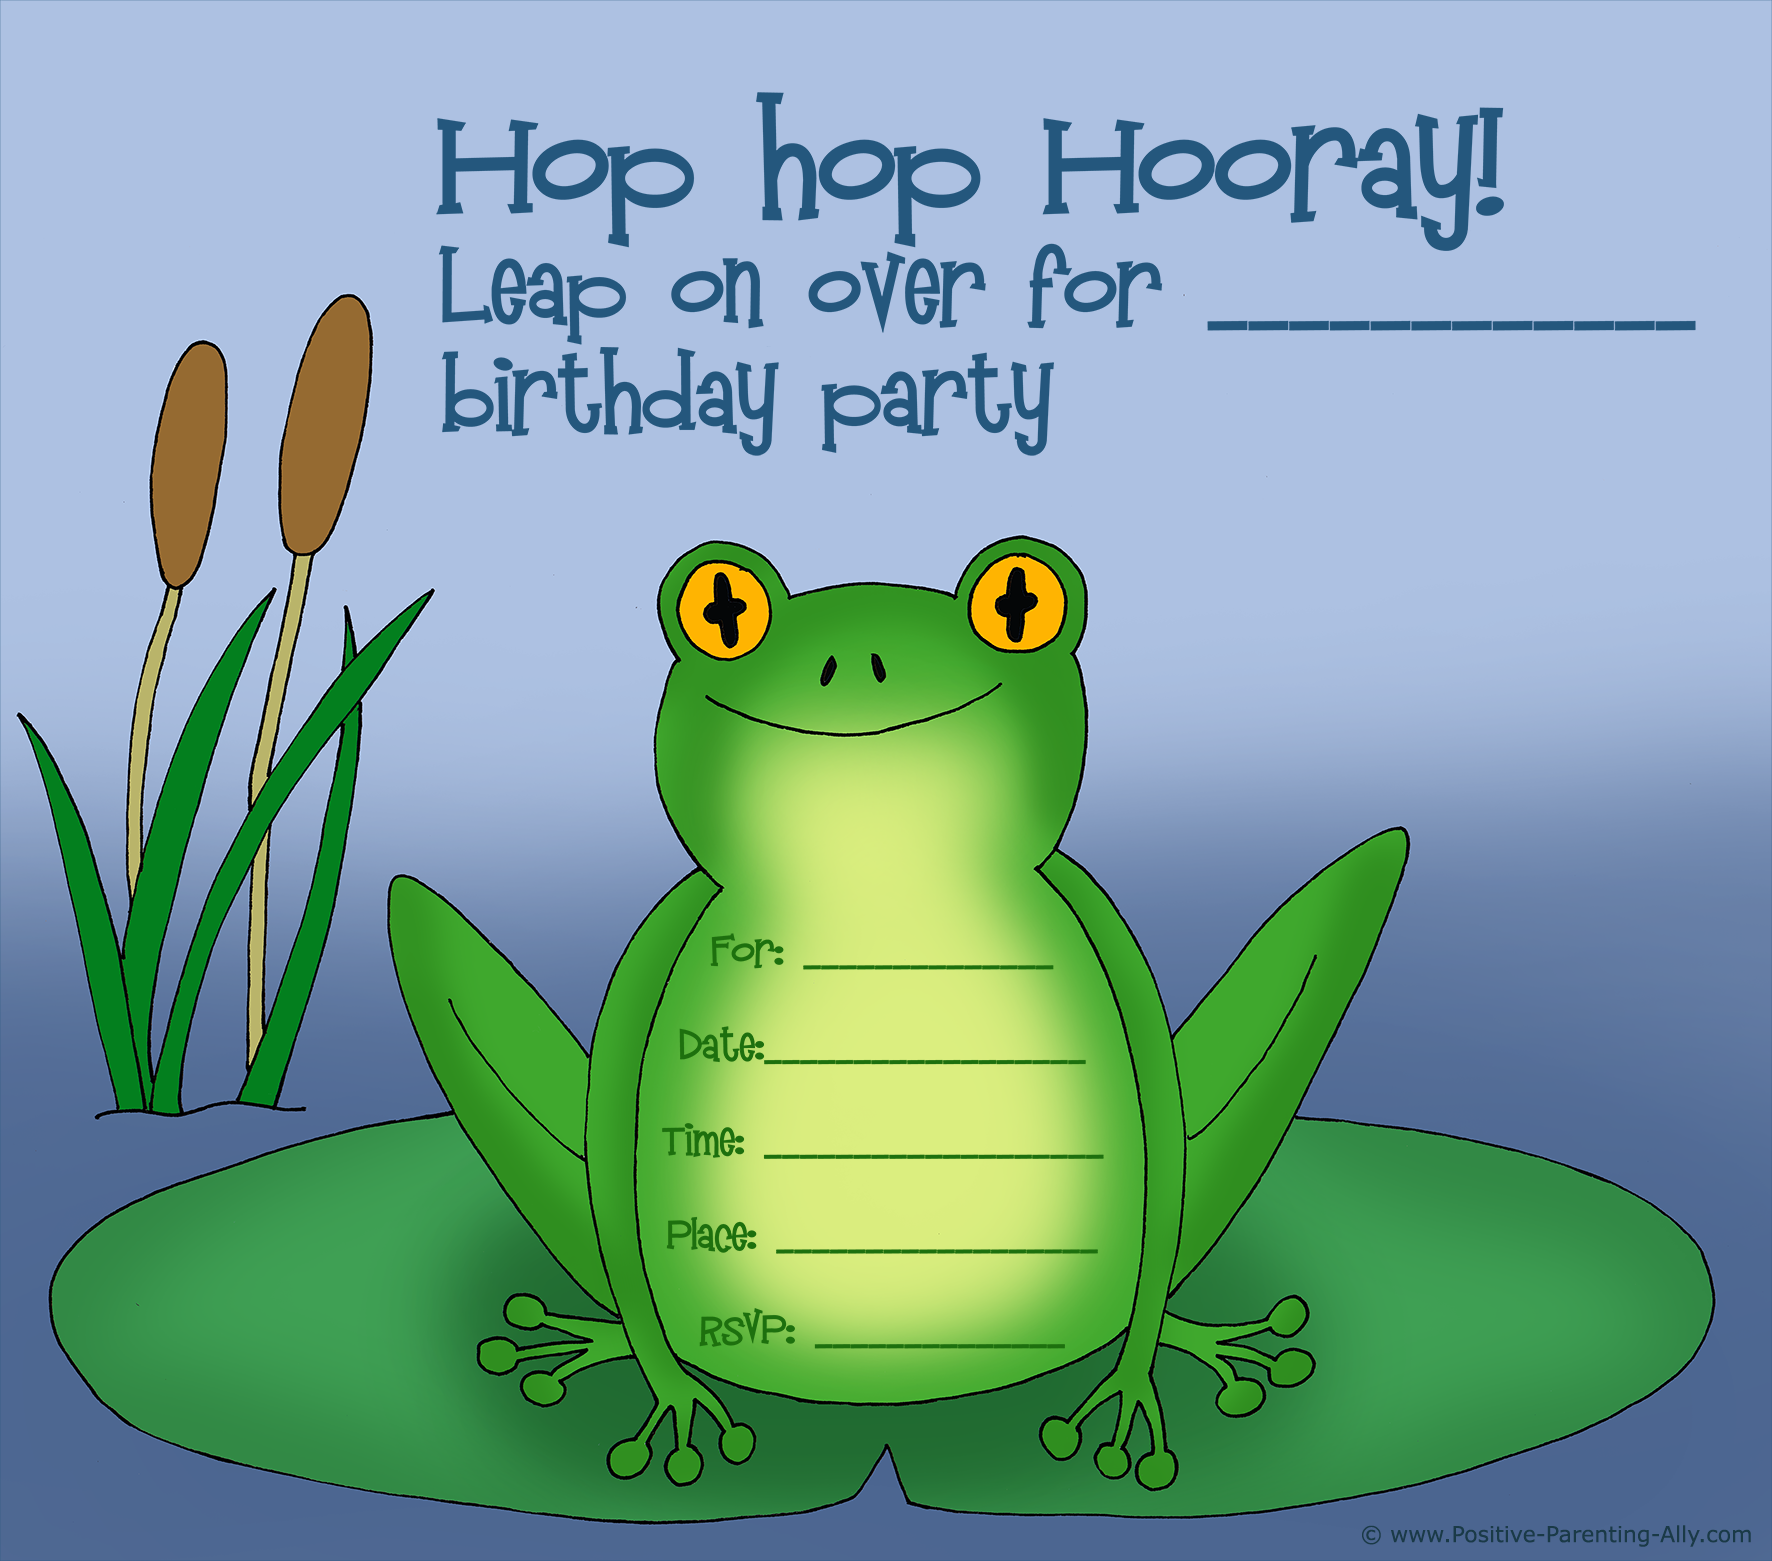 Cute frog birthday invitation for kids.